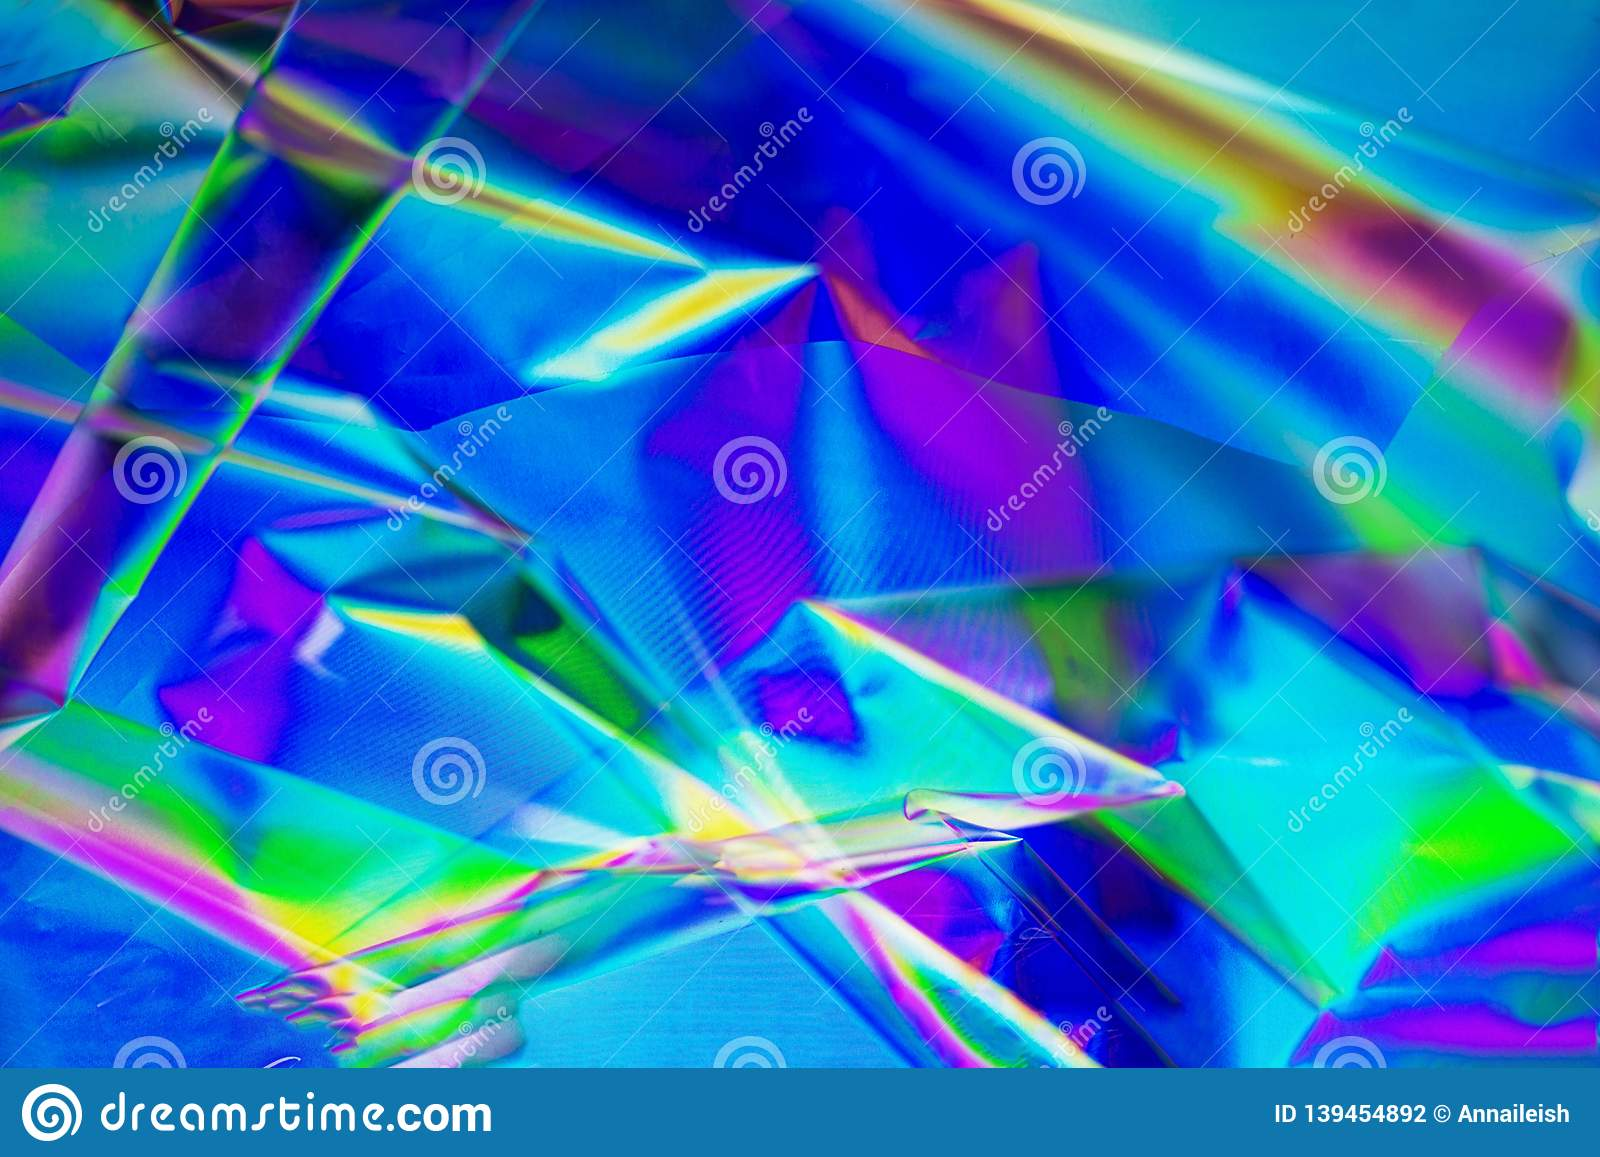 Retro synth wave, Abstract background in neon colors, cross polarization. Trend concept 2019 colors plastic pink, ufo